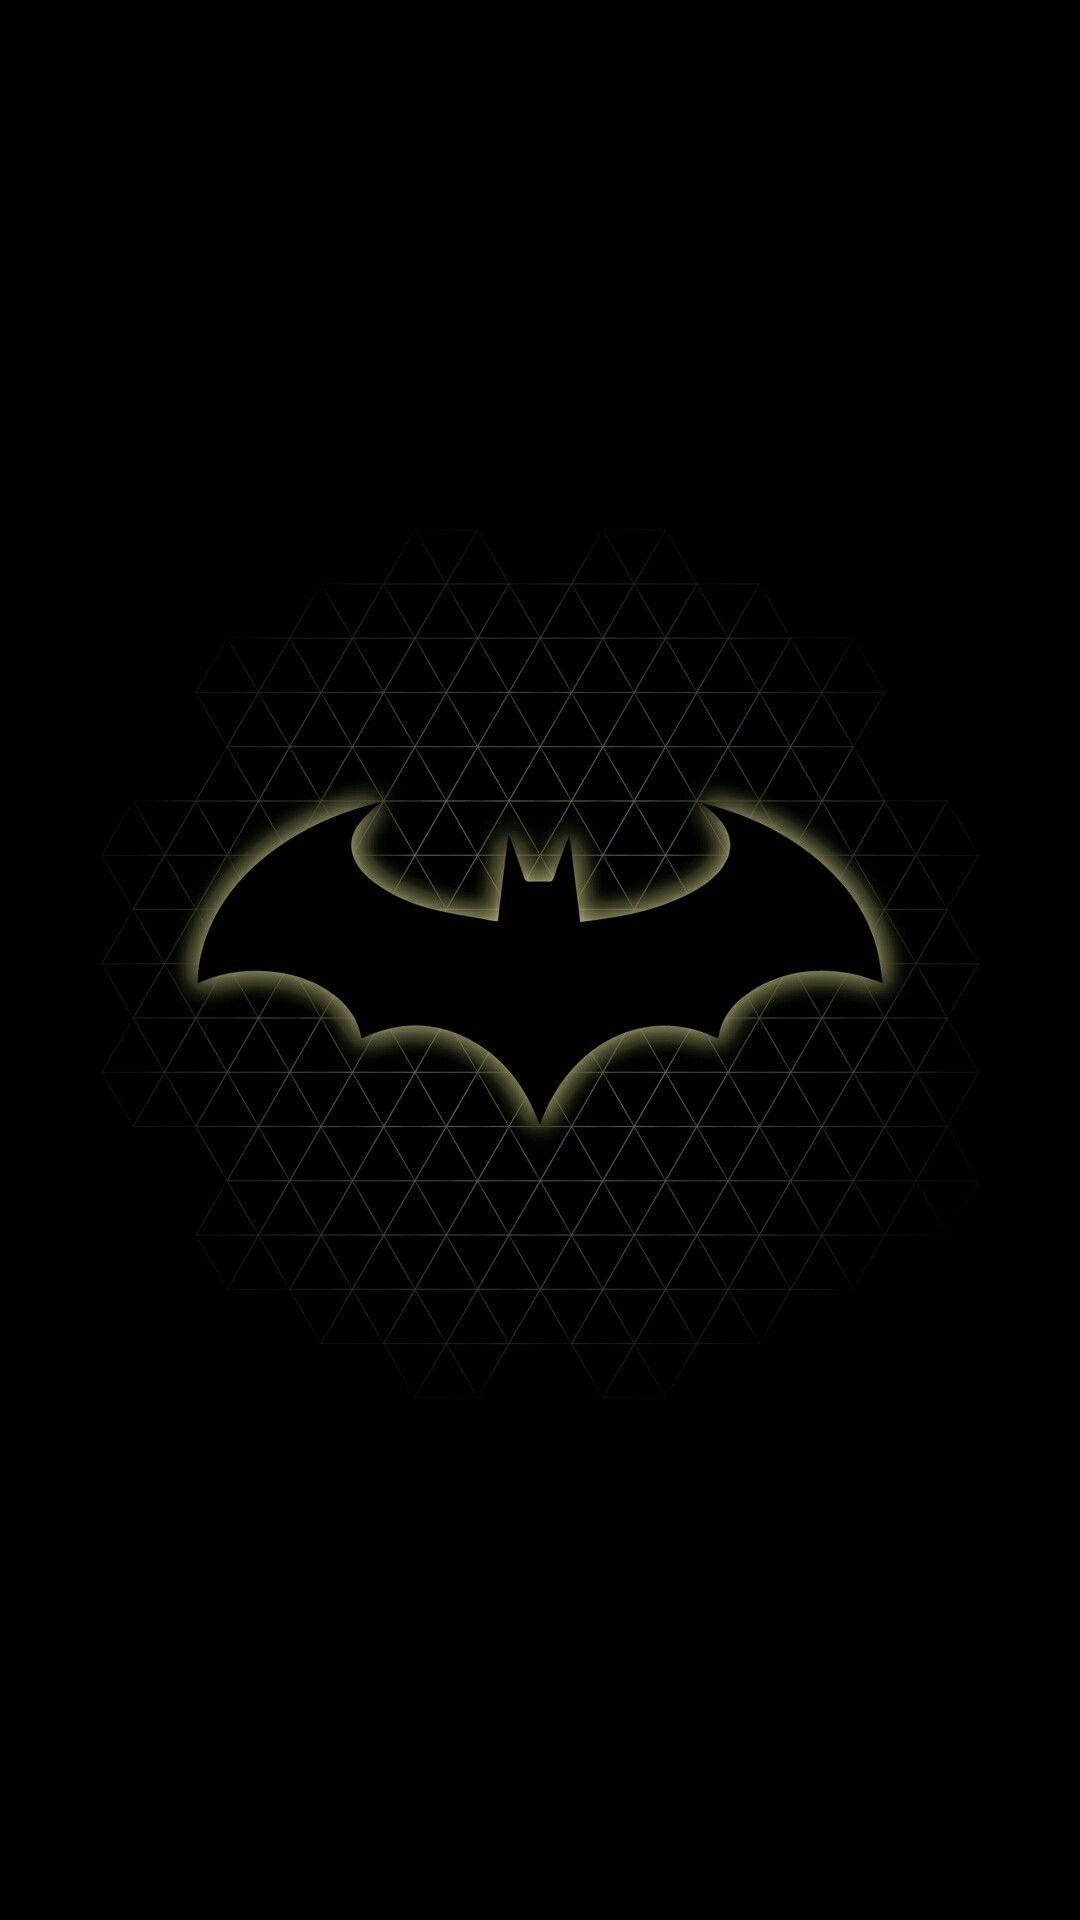 Batman Dark Knight Batman Wallpaper Batman Wallpaper Iphone